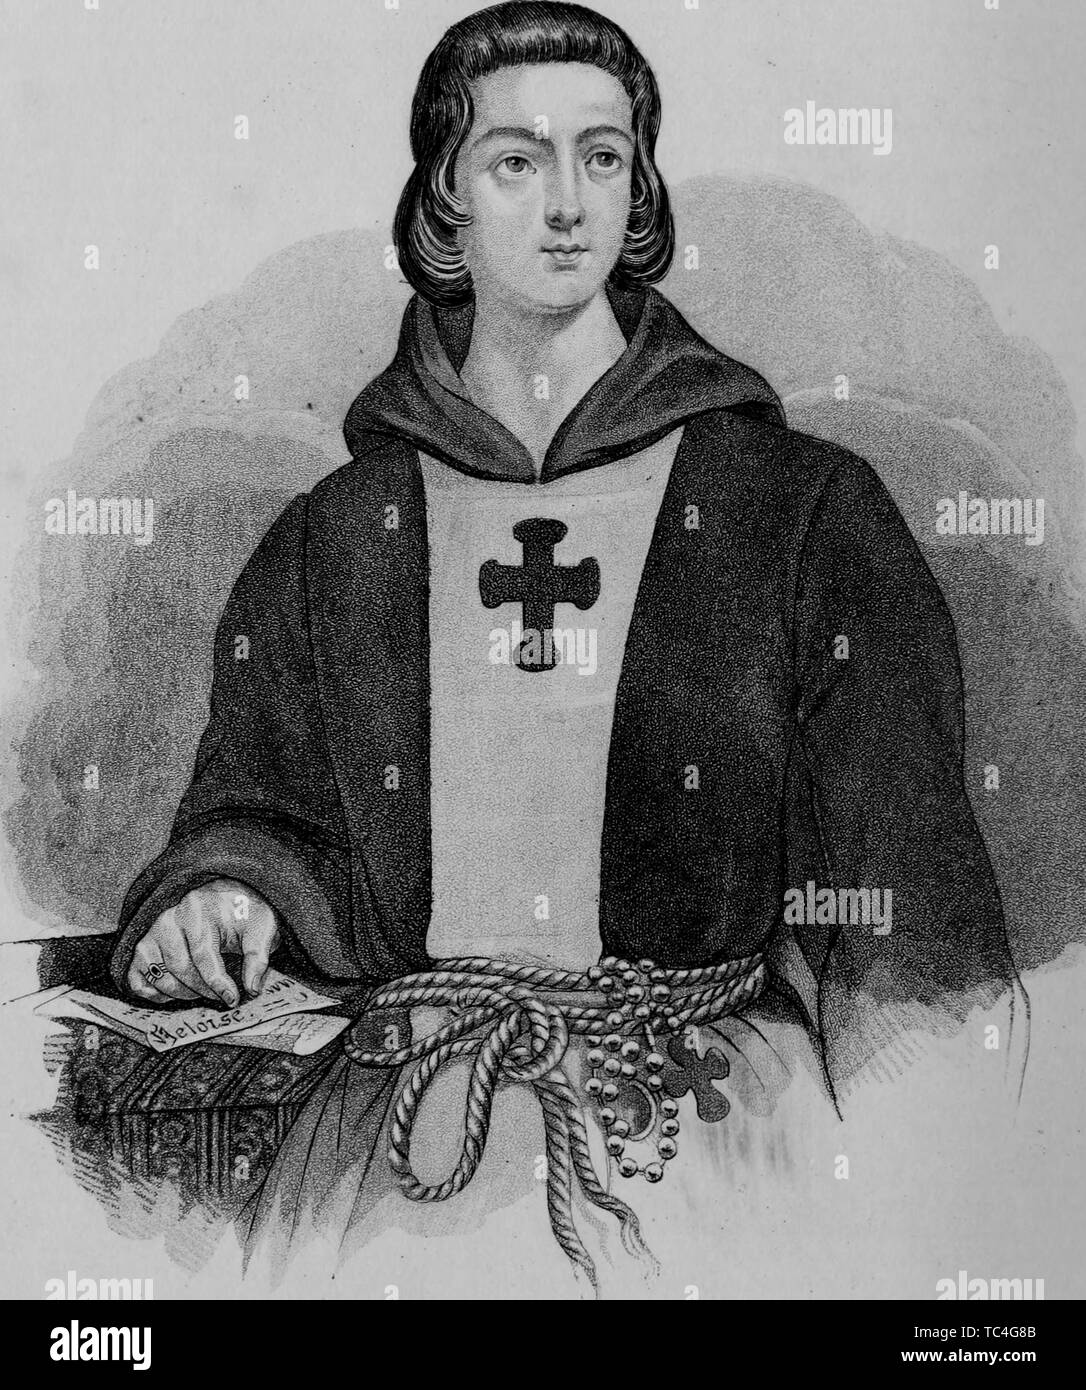 Peter Abelard High Resolution Stock Photography and Images - Alamy